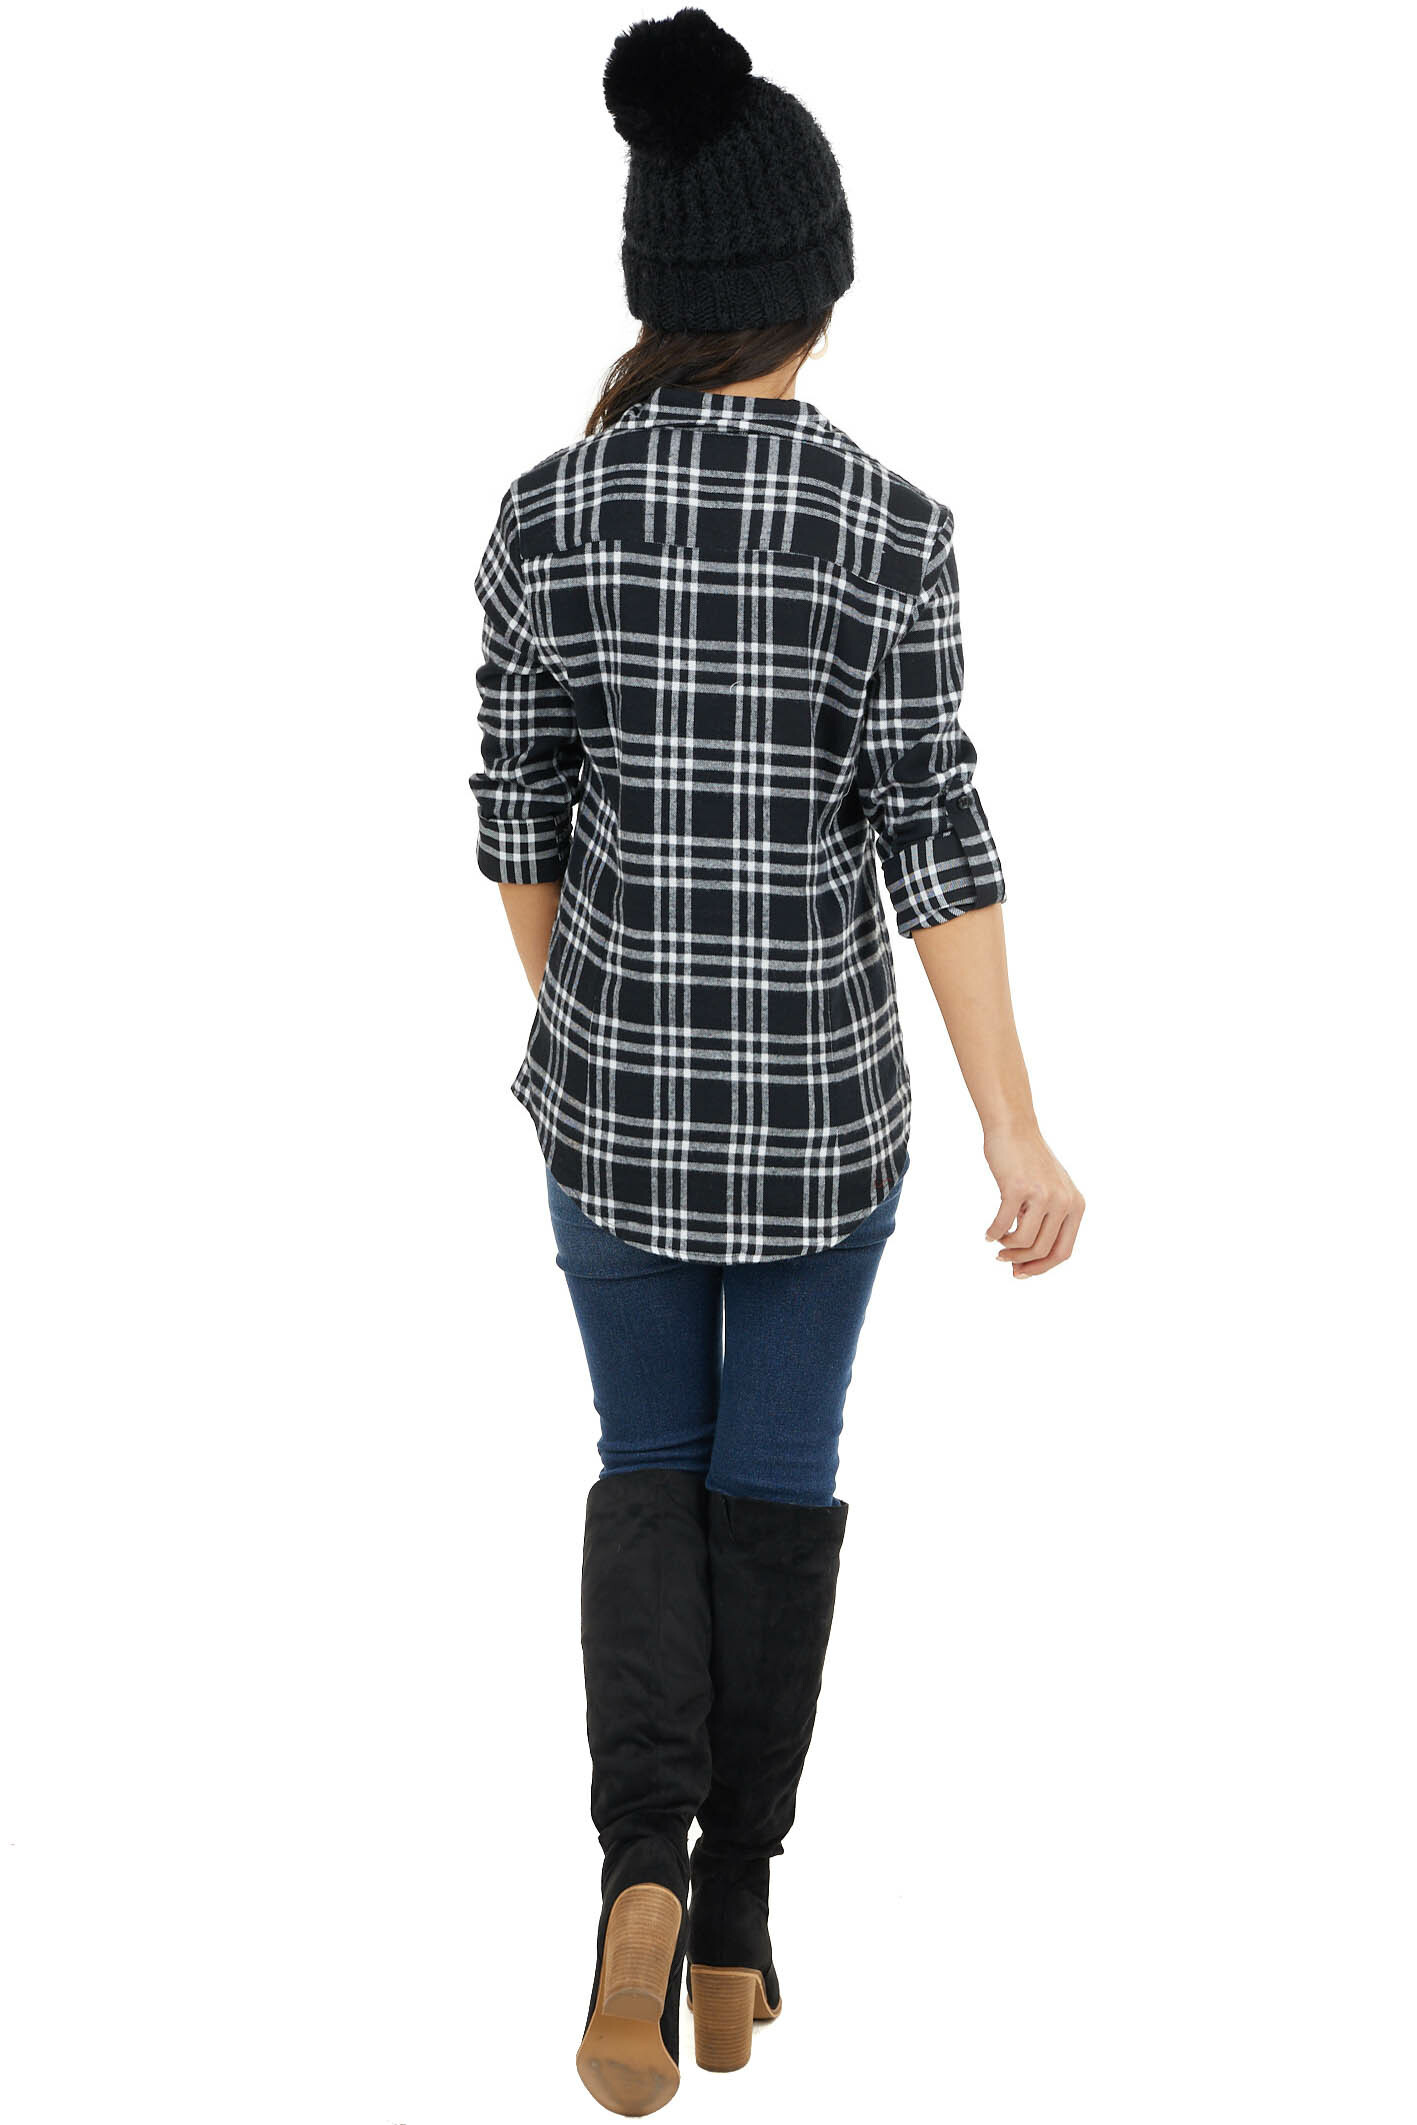 Black and White Plaid Button Up Top with Two Front Pockets